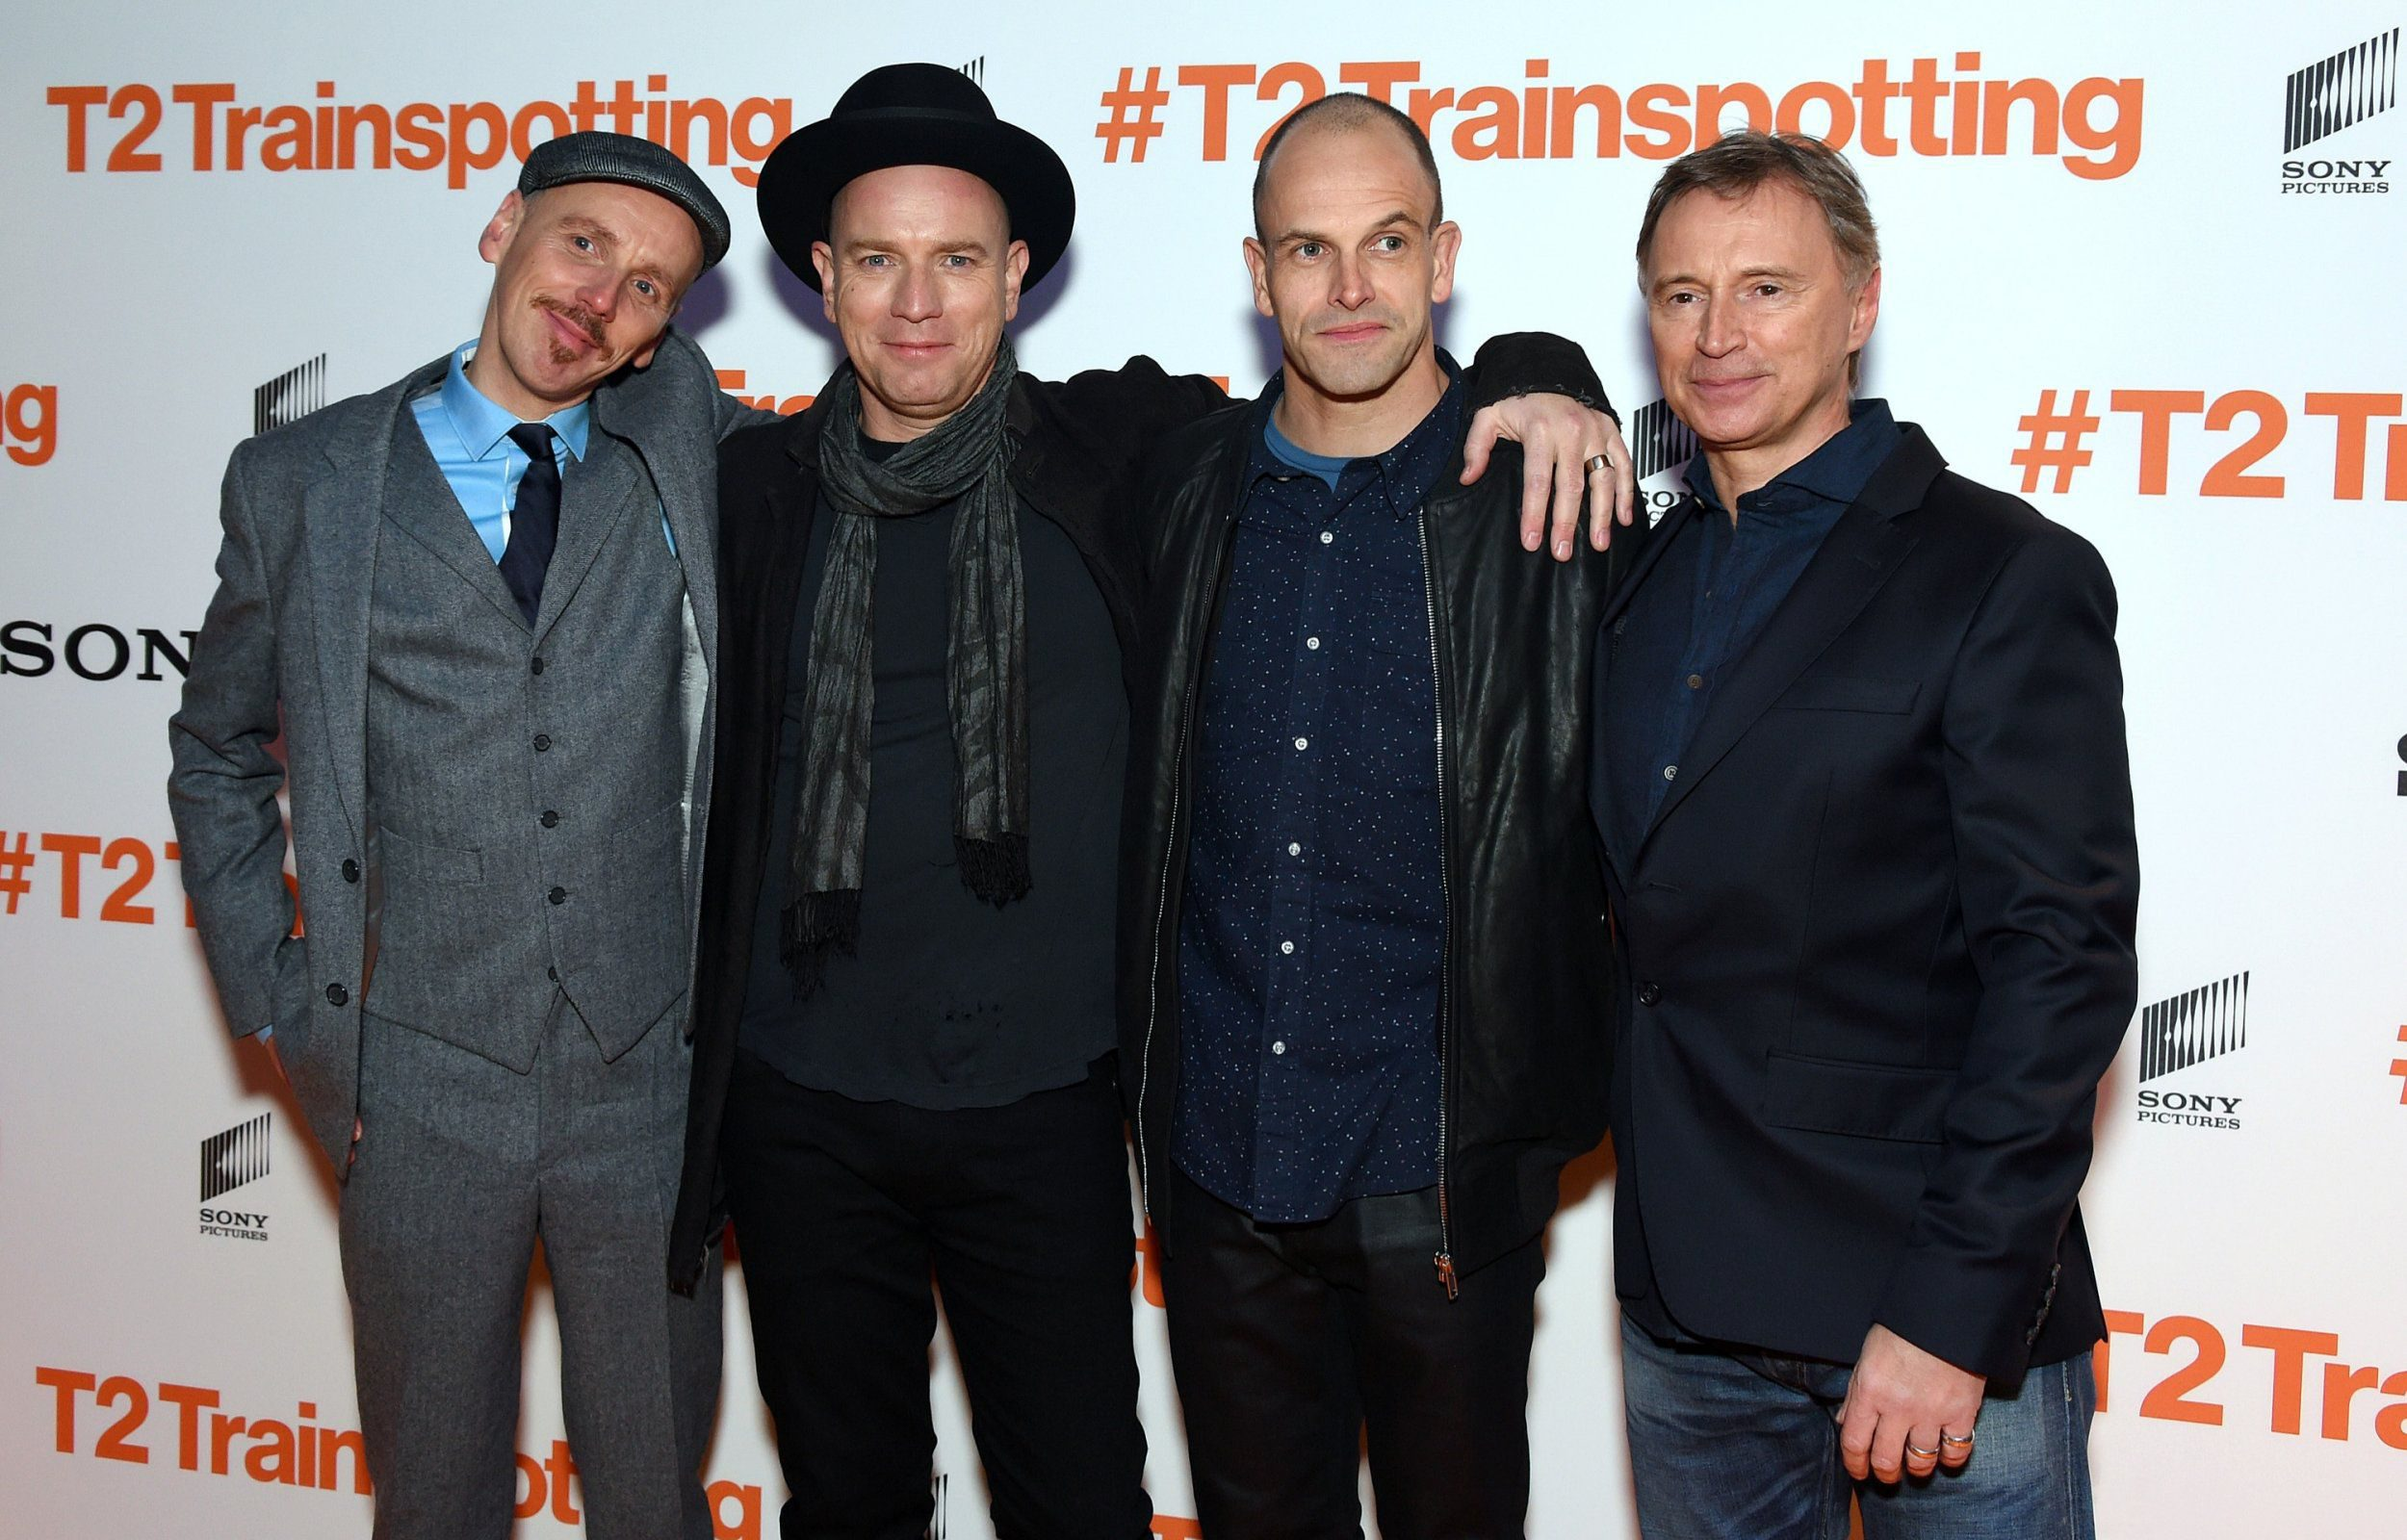 Danny Boyle wanted to do T2 Trainspotting 10 years ago but everyone looked too young